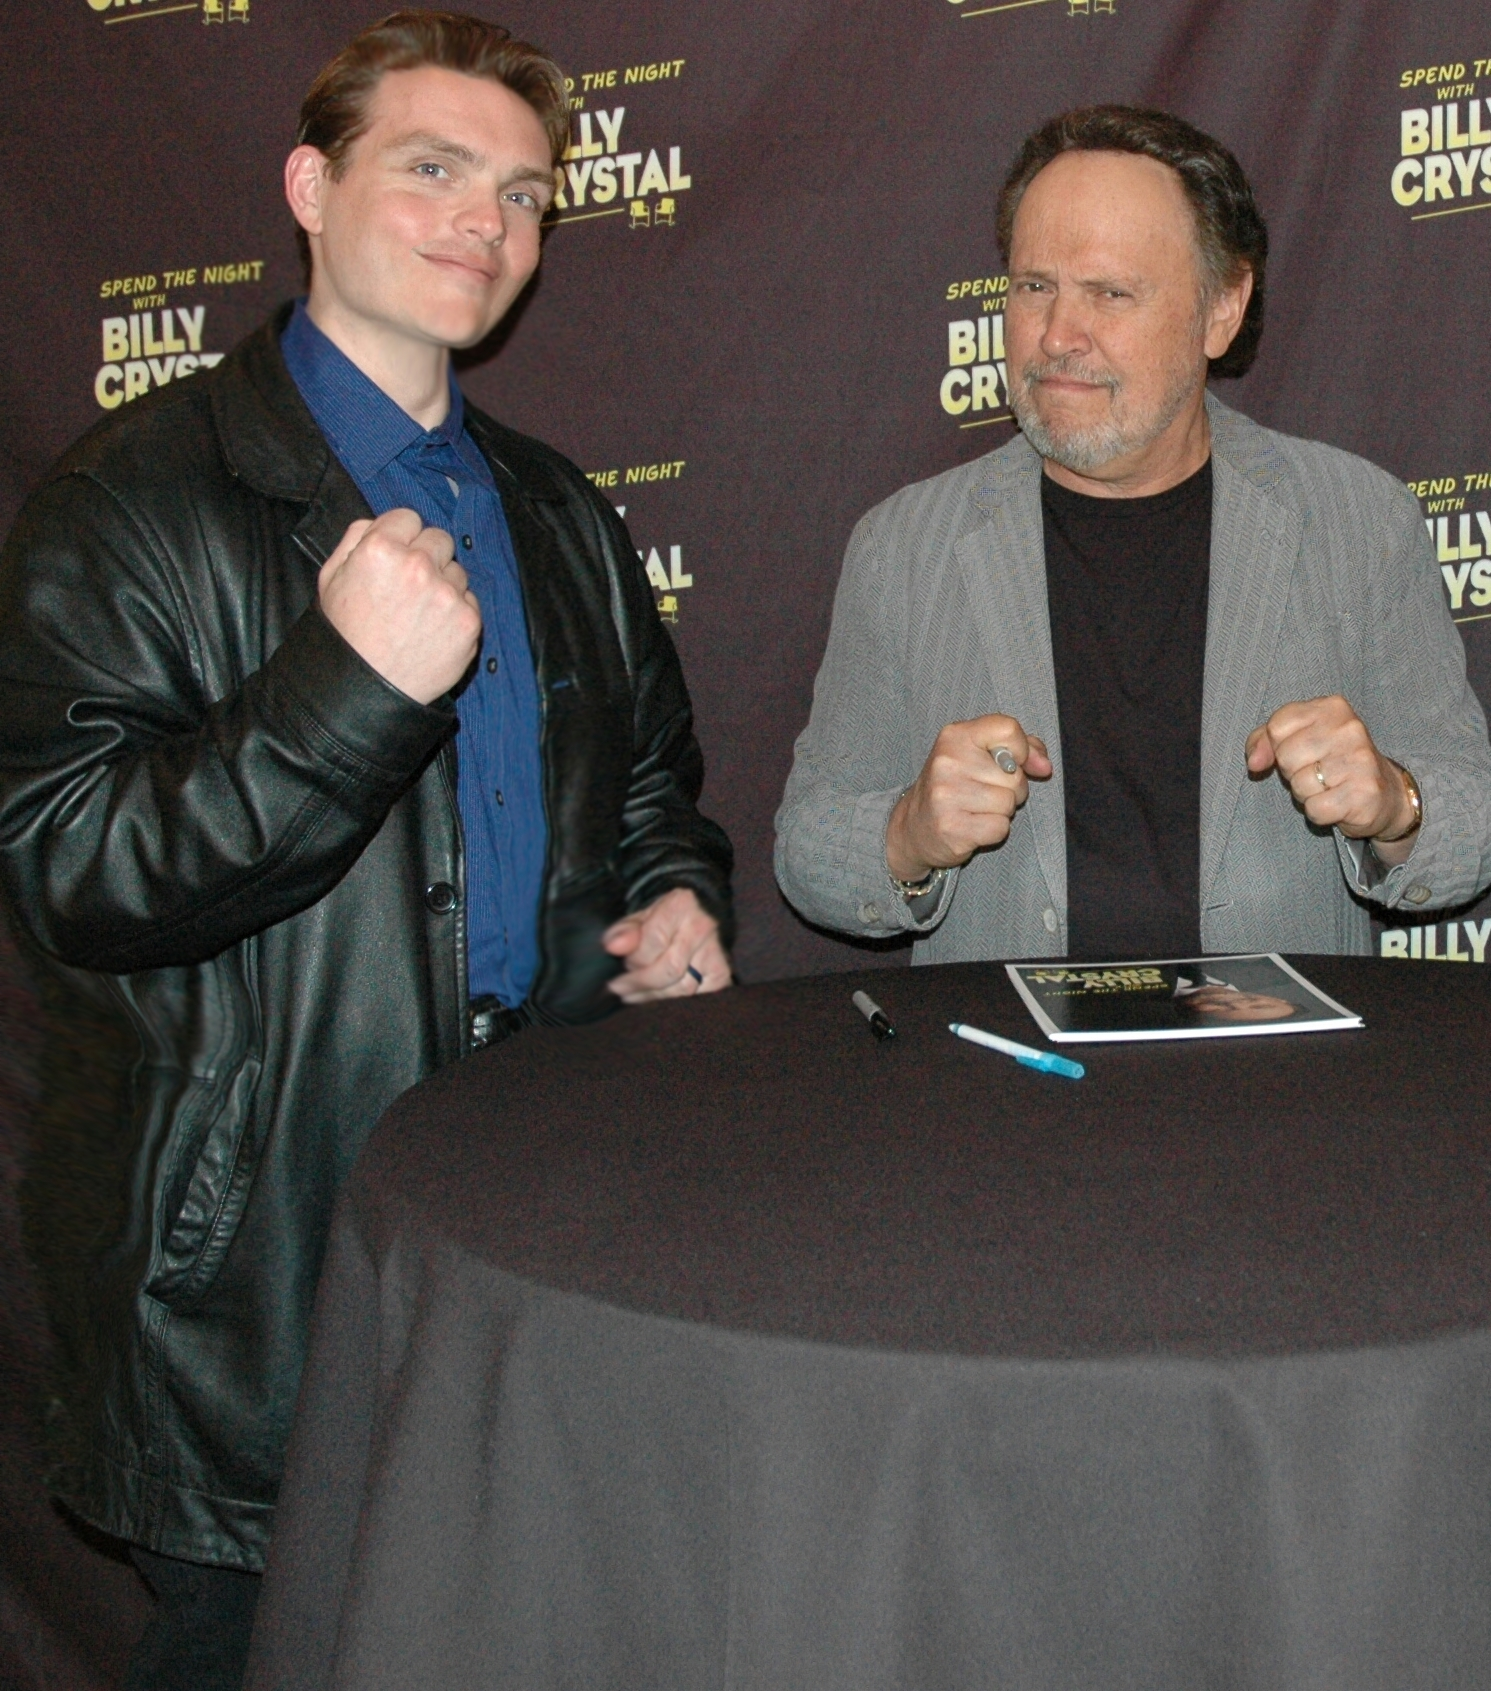 Q and Billy Crystal